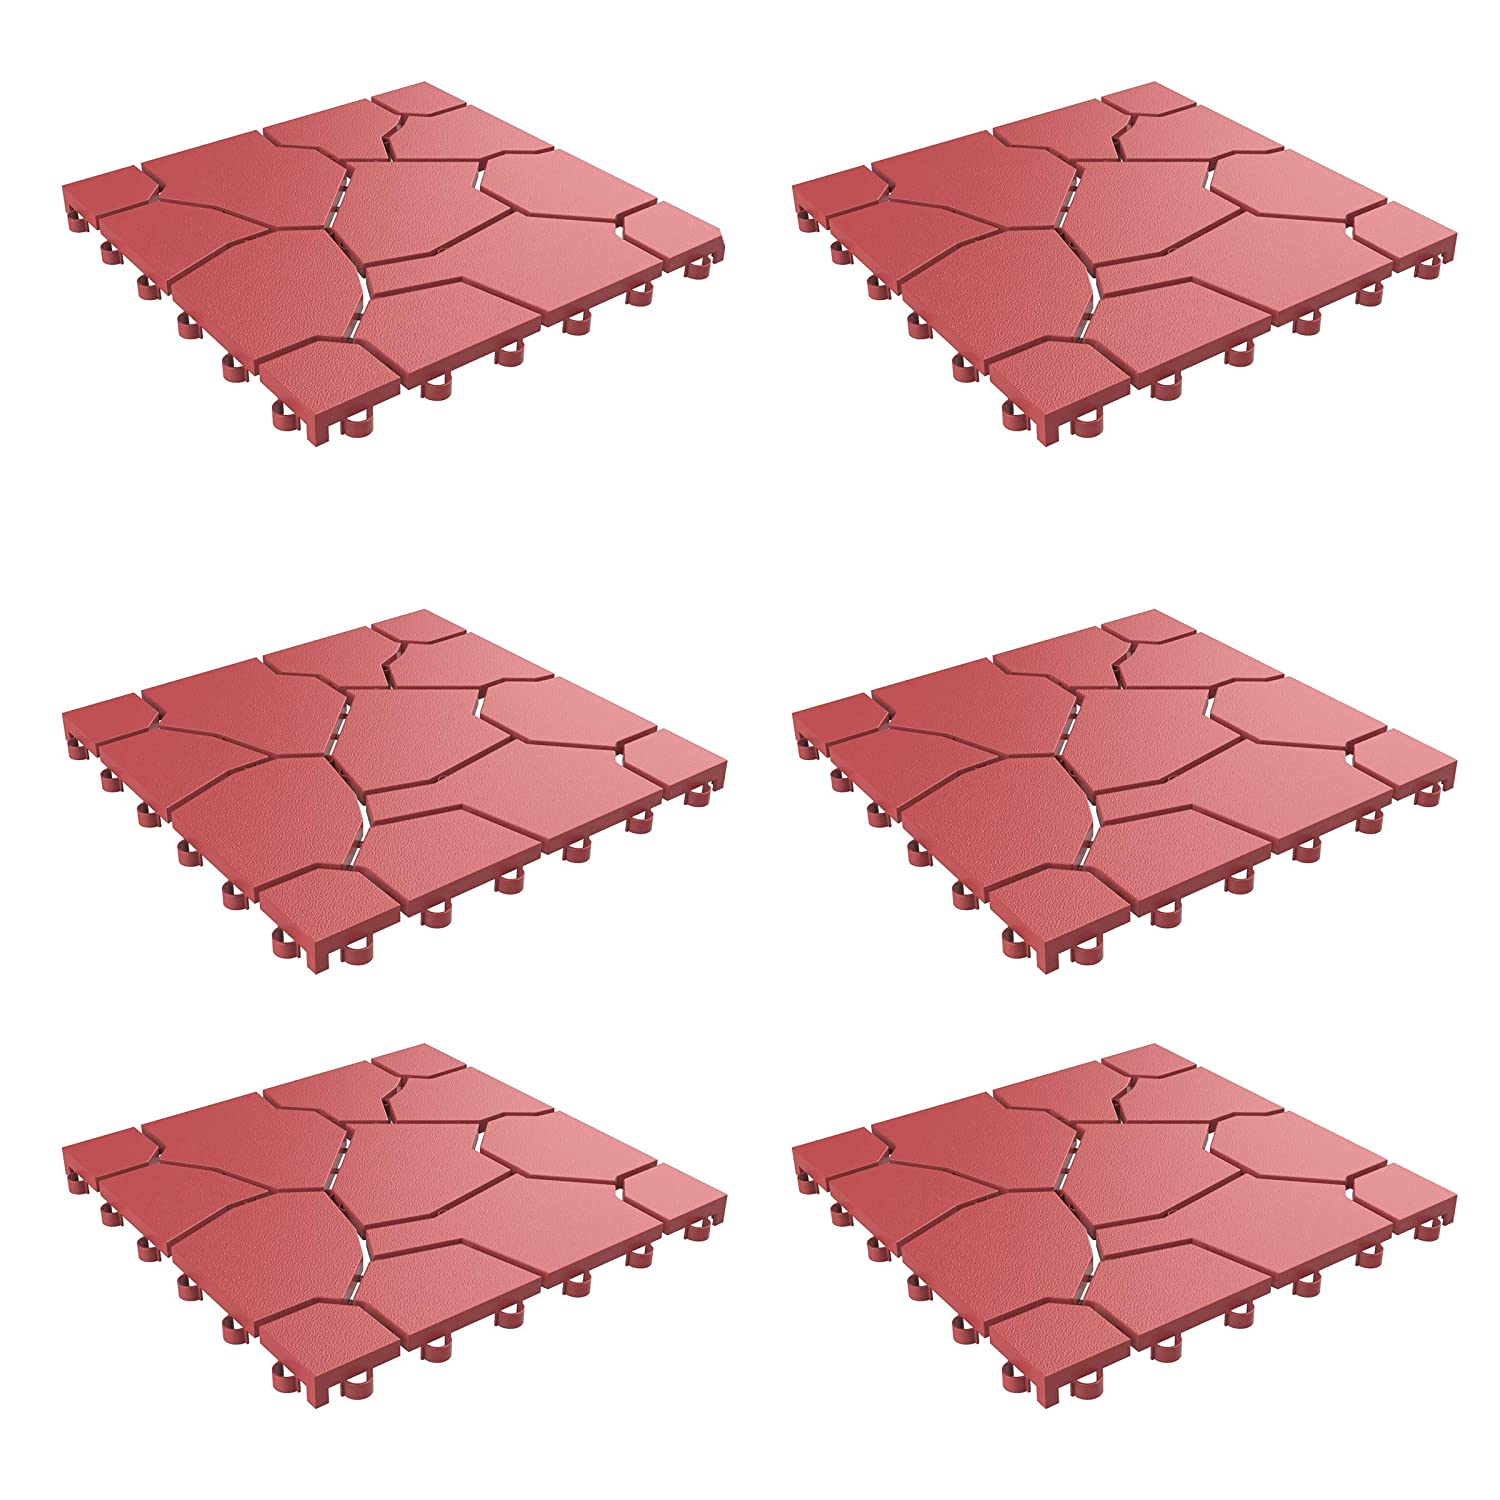 Pure garden 50 lg1172 patio and deck tiles interlocking look outdoor flooring pavers weather resistant and antislip square diy mat brick red 6 pack